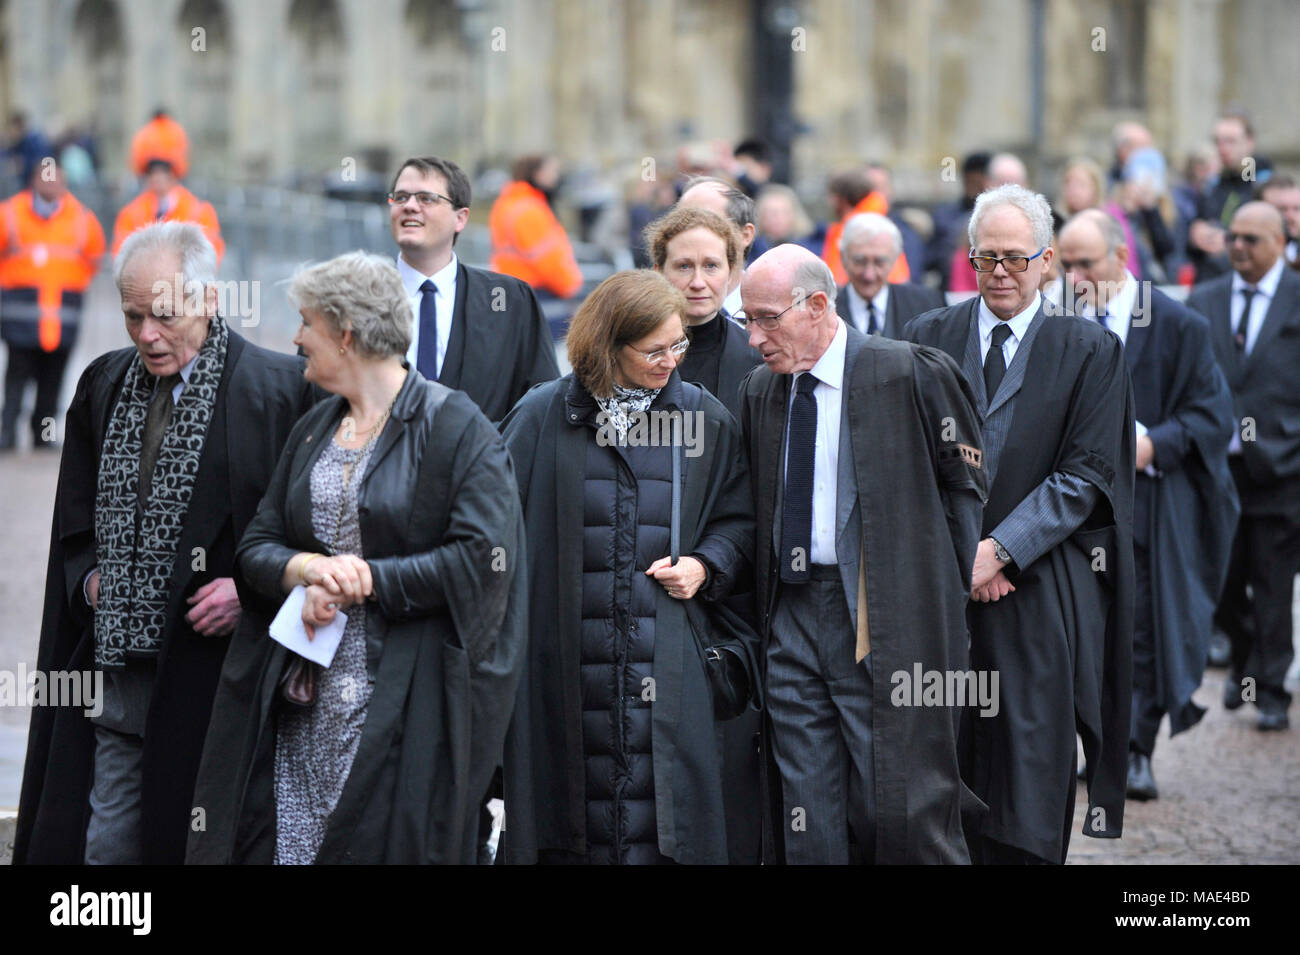 Cambridge, Britain. 31st Mar, 2018. University professors arrive at the private funeral of British physicist Stephen Hawking at the Great St Mary's Church in Cambridge, Britain, on March 31, 2018. The funeral of Professor Stephen Hawking was held Saturday at a church near the Cambridge University college where he was a fellow for more than half a century. Credit: Stephen Chung/Xinhua/Alamy Live News Stock Photo